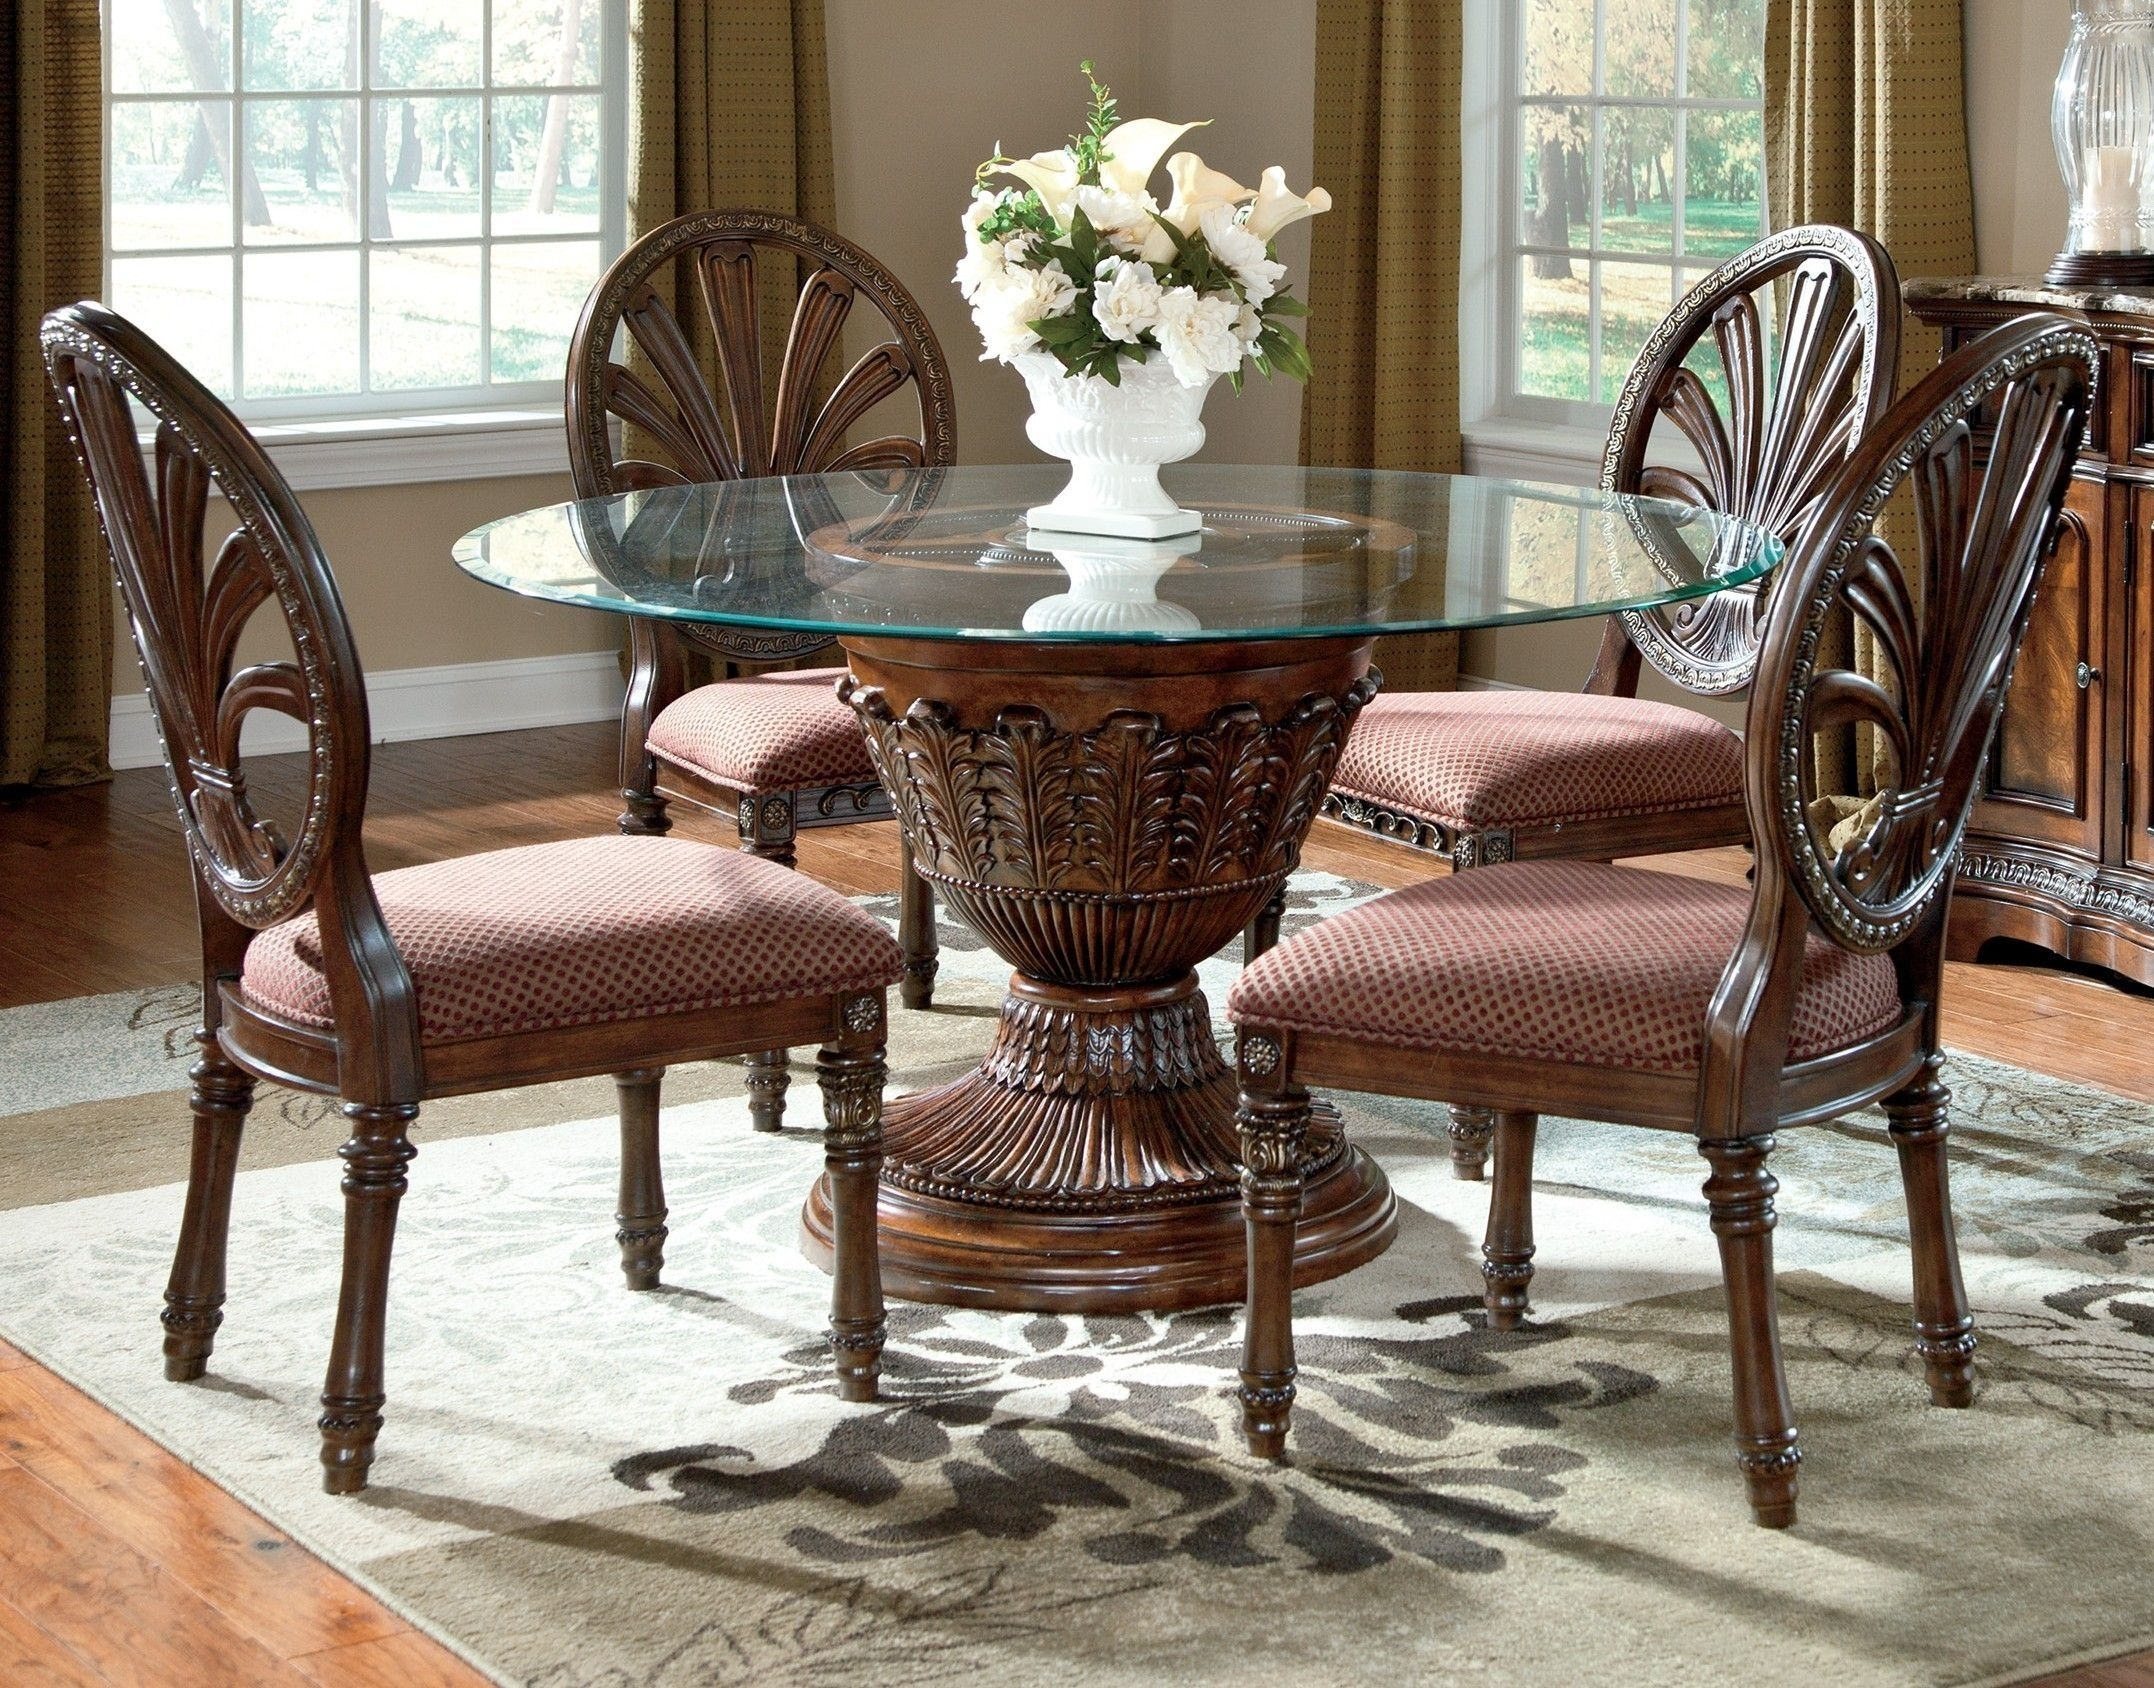 Pingood Furniture On Table Furniture | Pinterest | Dining With Regard To Newest Market 7 Piece Dining Sets With Host And Side Chairs (View 13 of 20)